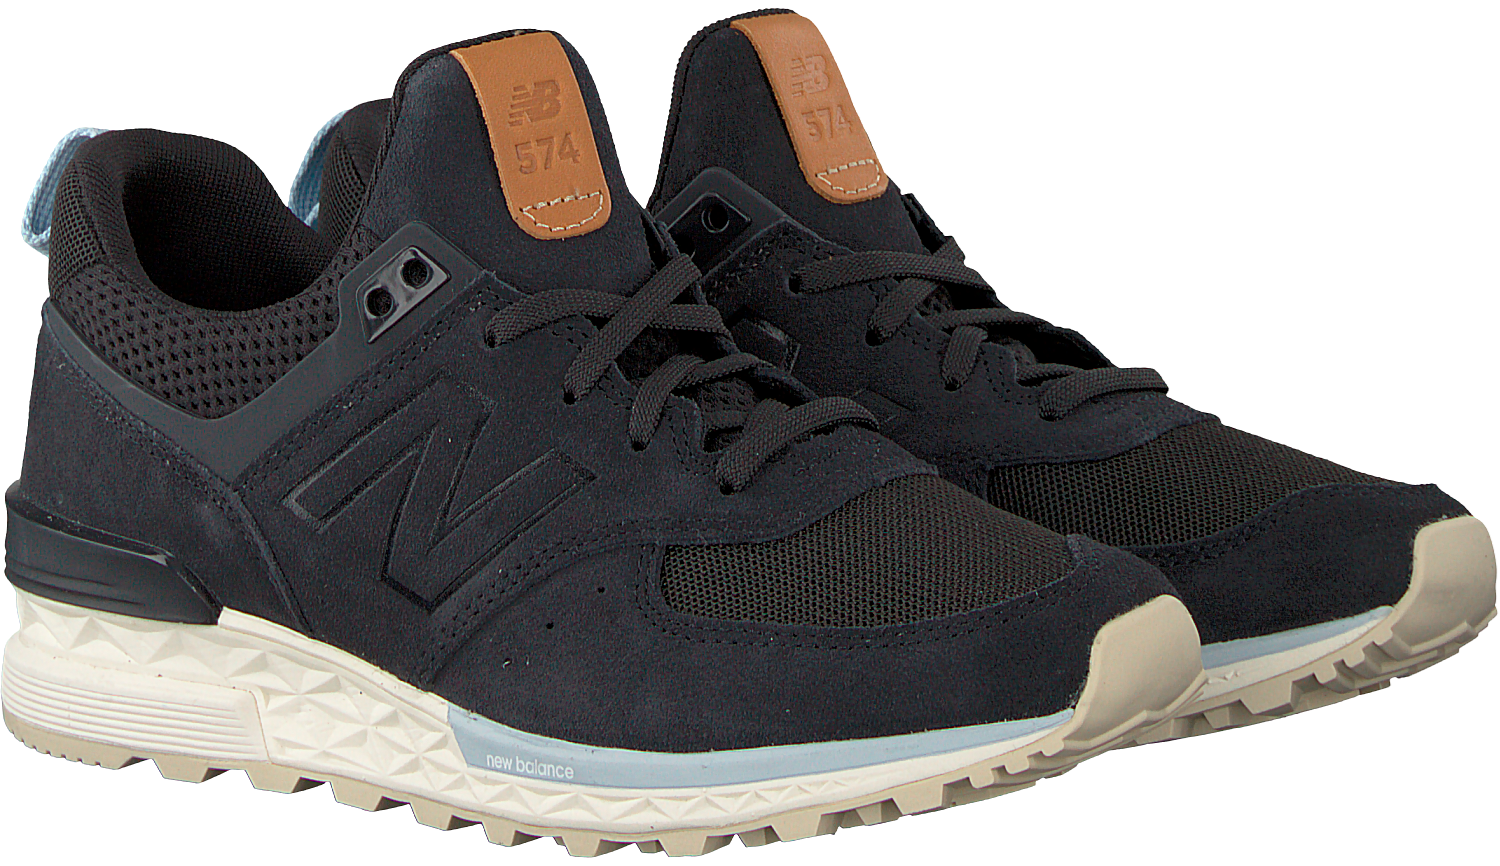 new balance ws574 black dames sneakers zwart